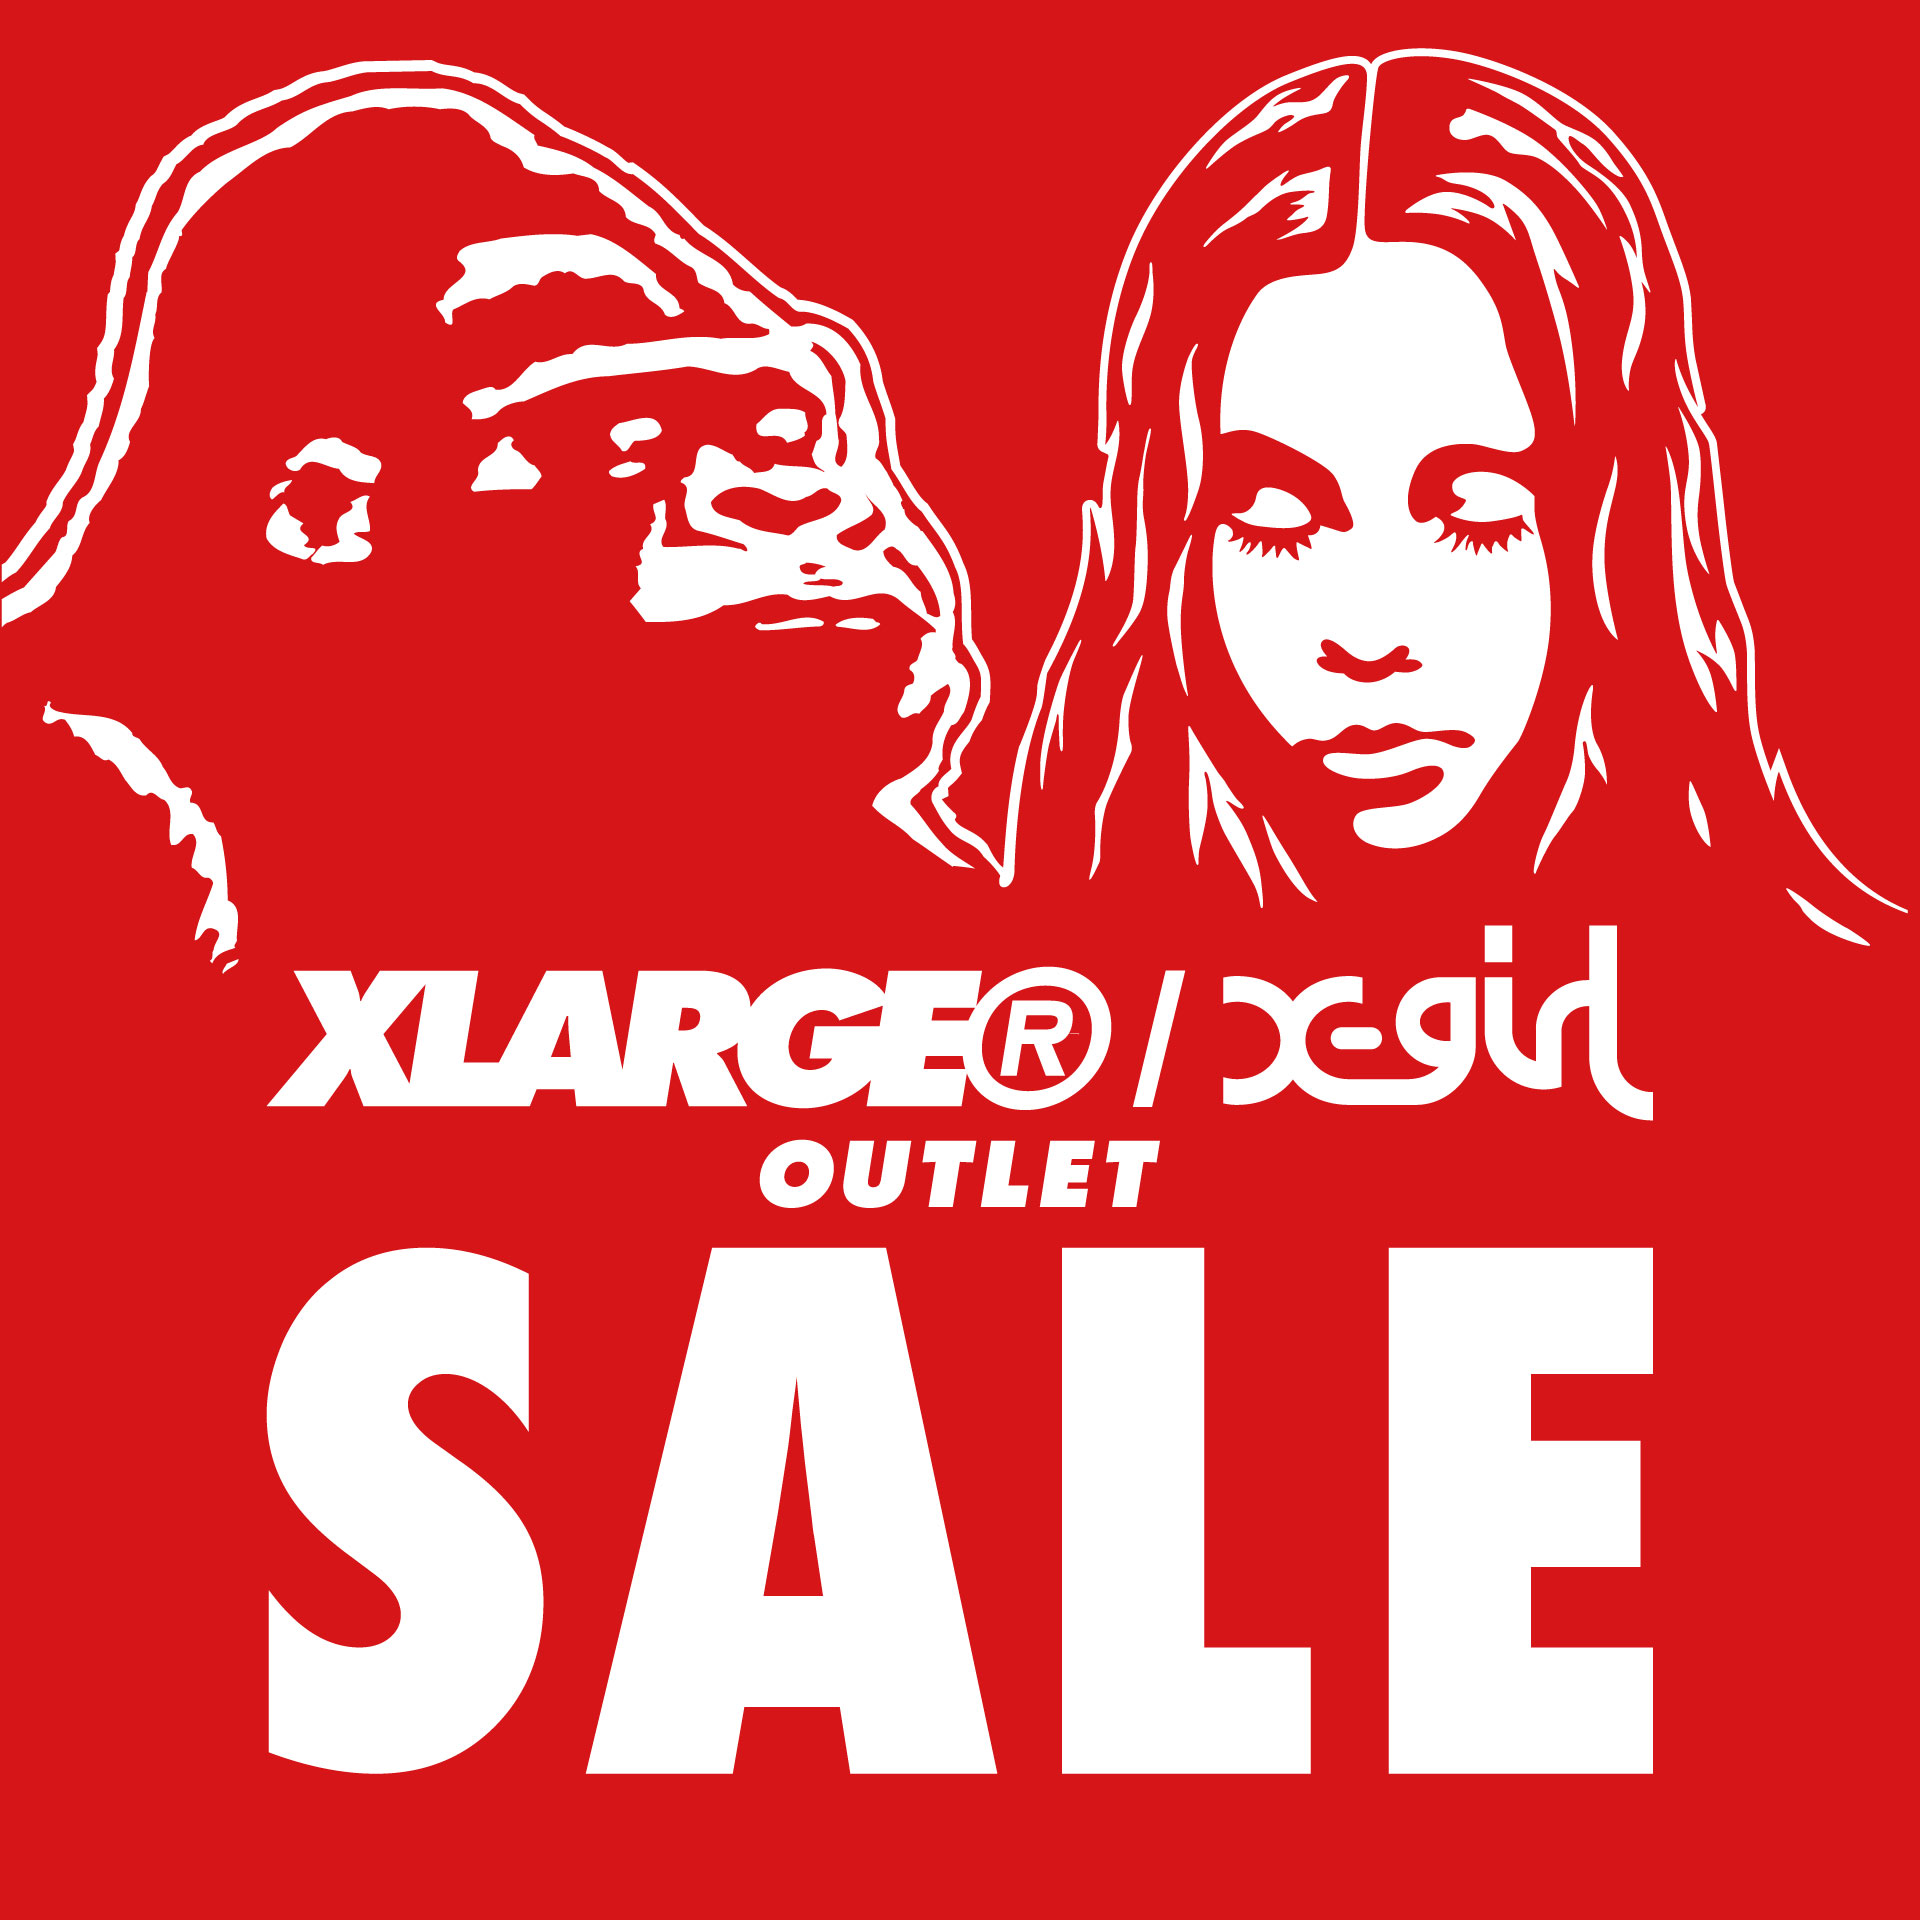 XLARGE®/X-girl OUTLET 10% OFF CAMPAIGN